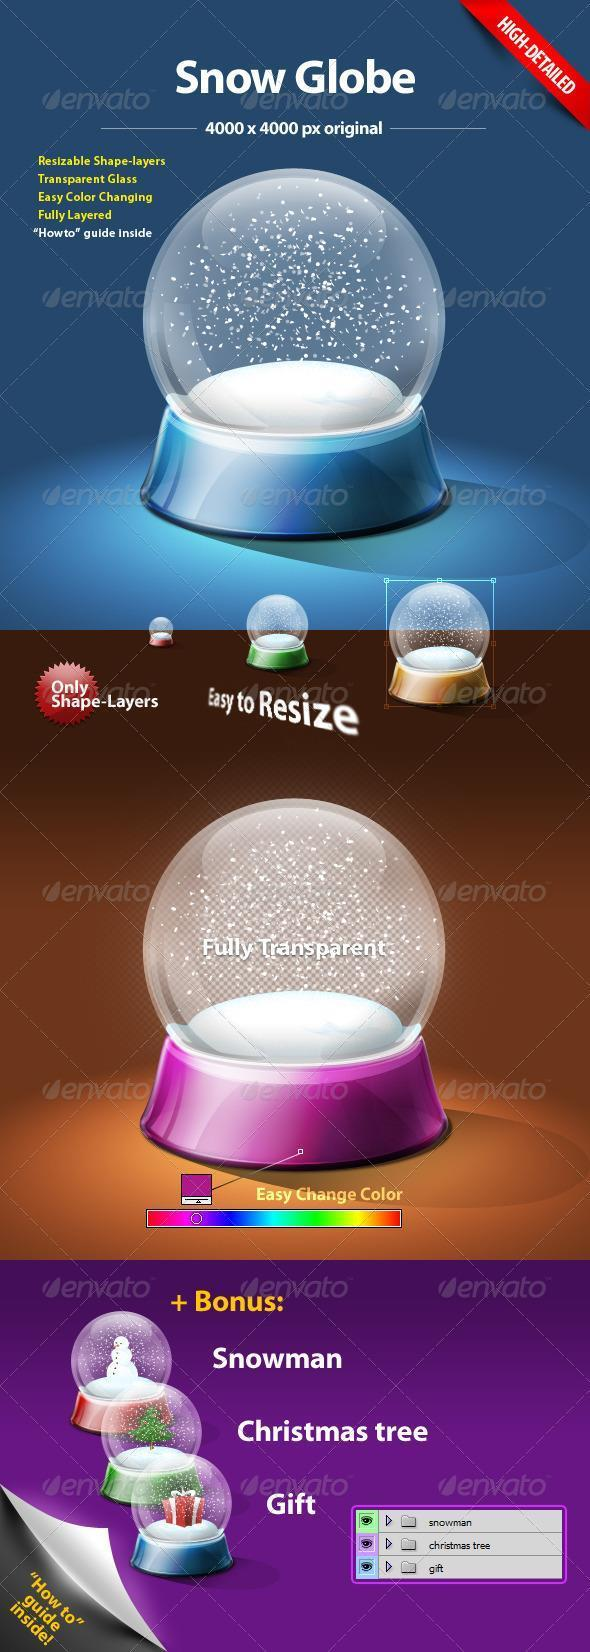 Snowglobe Photoshop Creator Kit